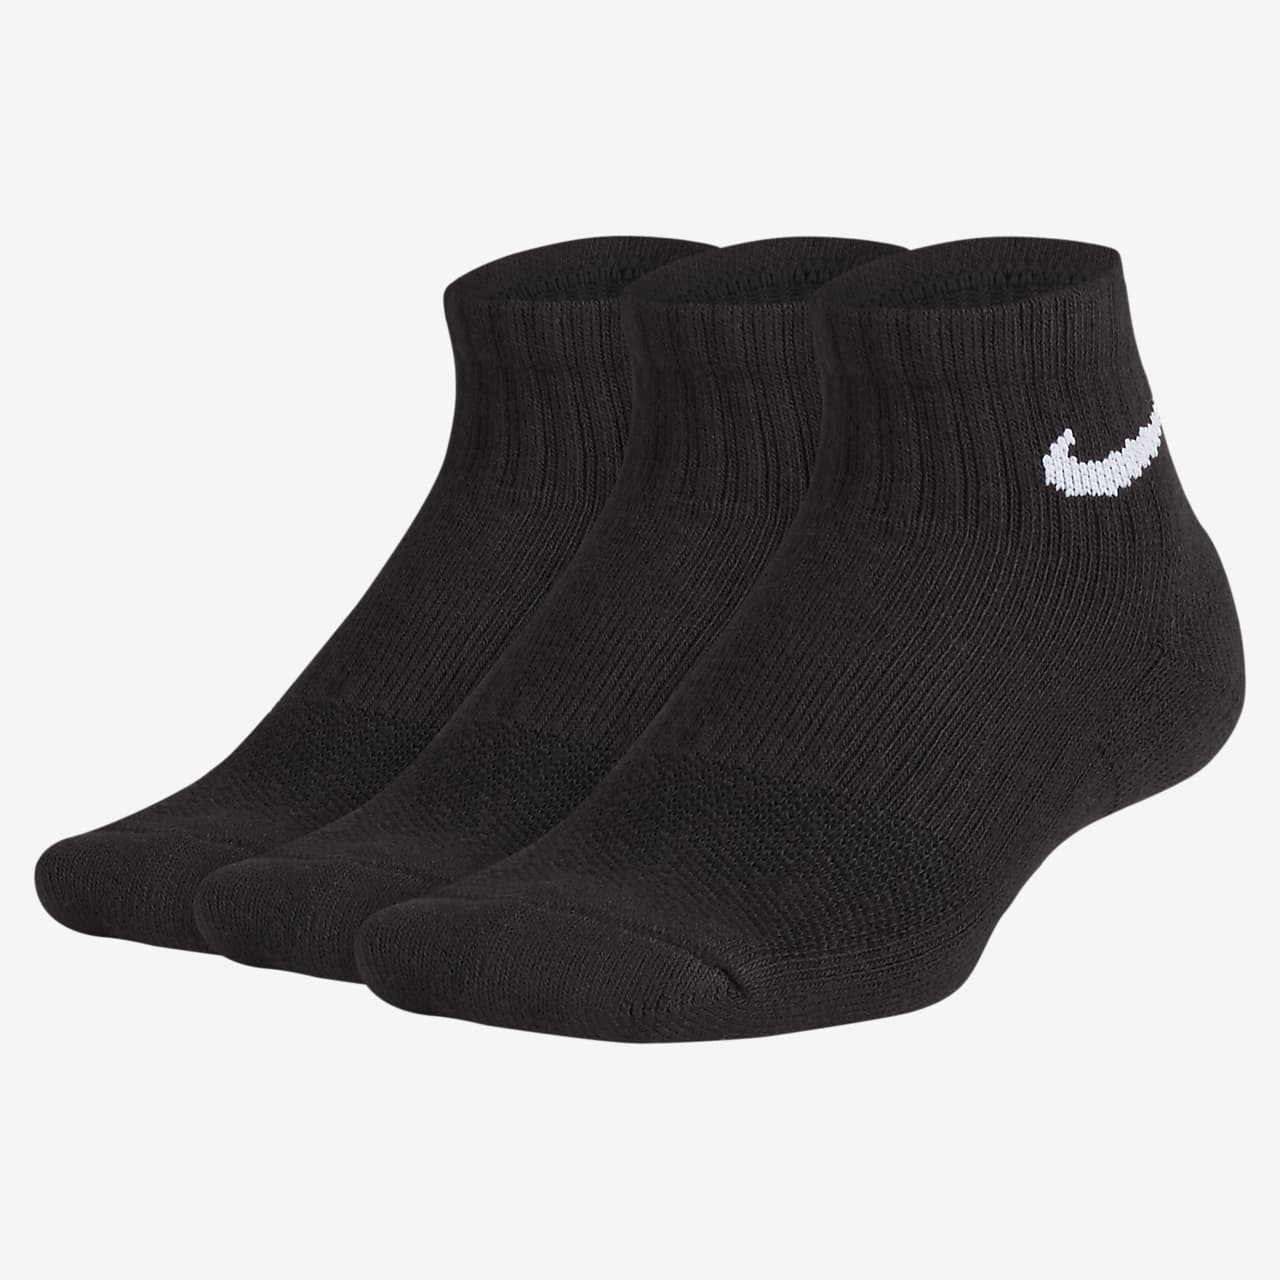 Nike Everyday Calcetines hasta el tobillo acolchados (3 pares) - Niño/a